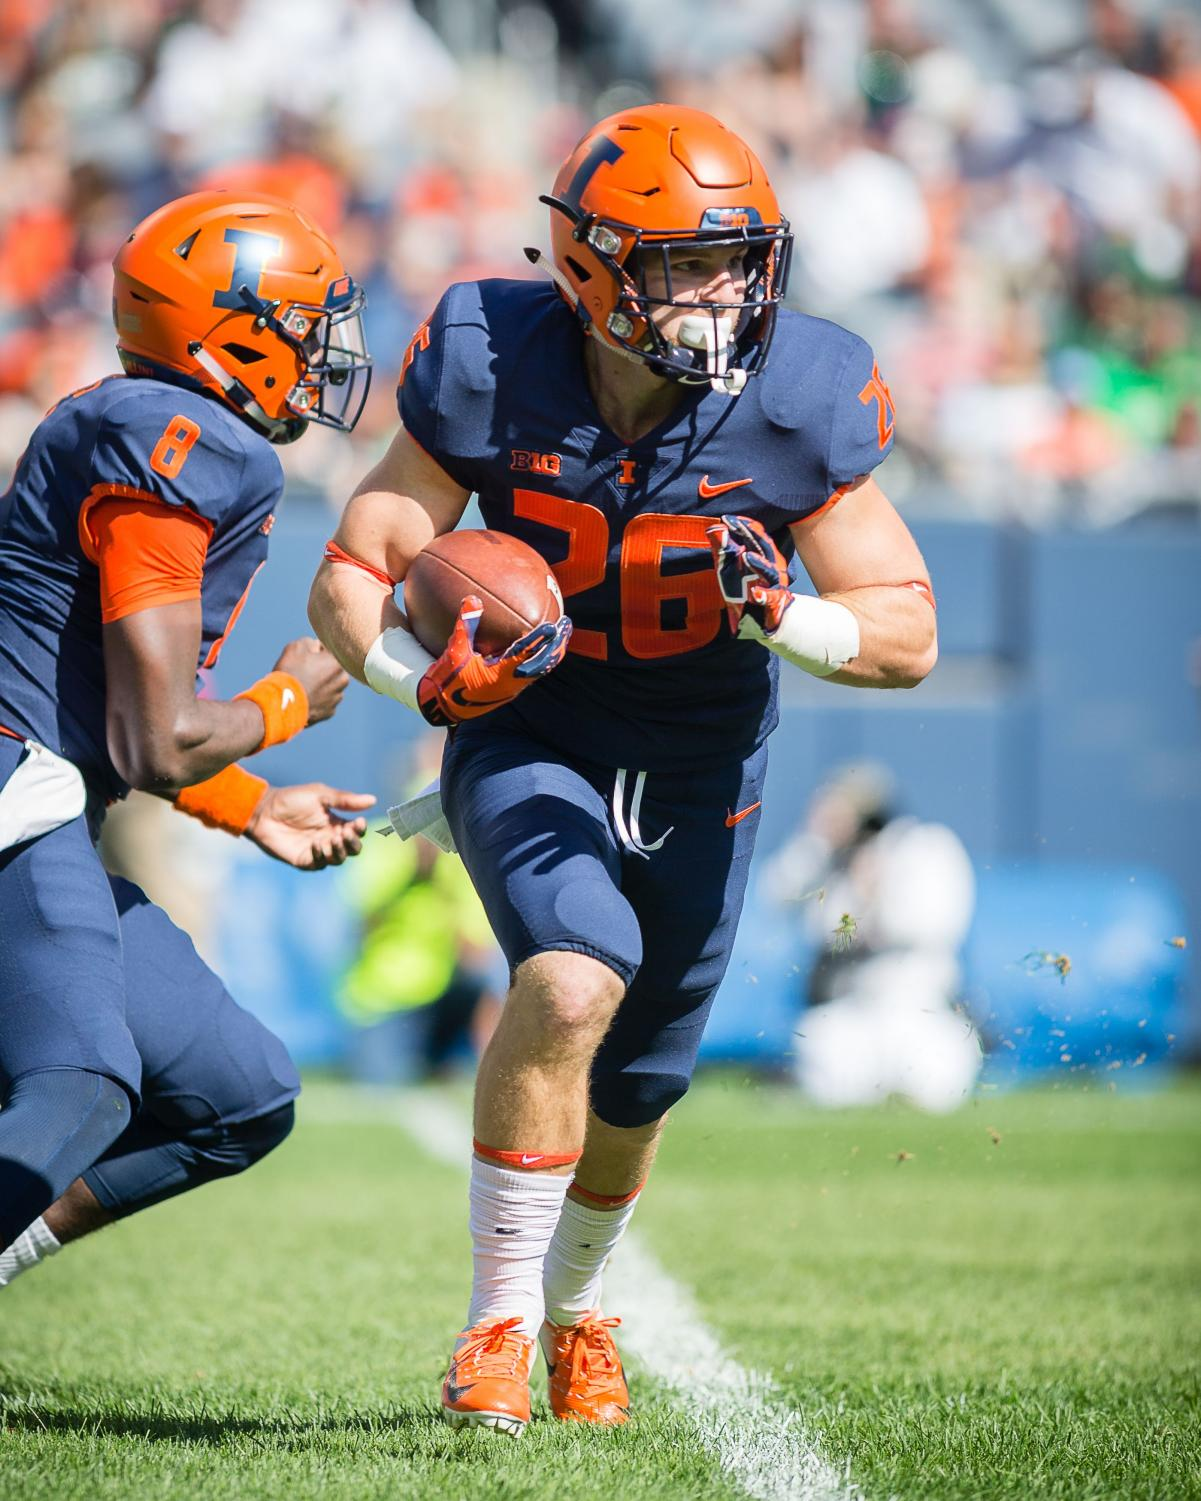 Illinois running back Mike Epstein runs the ball during the game against USF at Soldier Field on Saturday. The Illini lost 25-19.